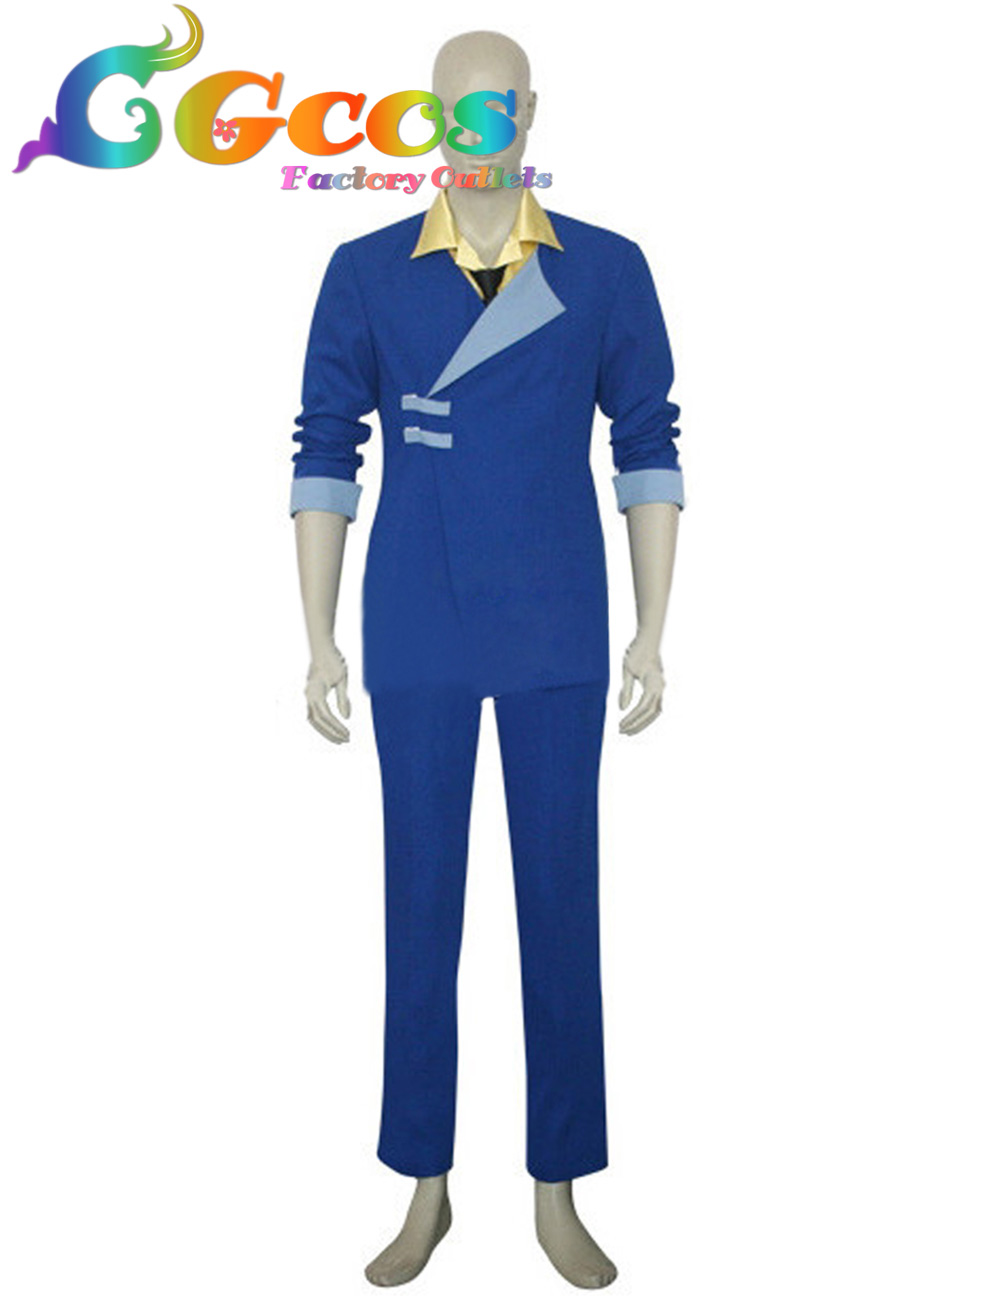 CGCOS Free Shipping Cosplay Costume Cowboy Bebop Spike Spiegel Uniform Retail/Wholesale Halloween Christmas Party Any Size